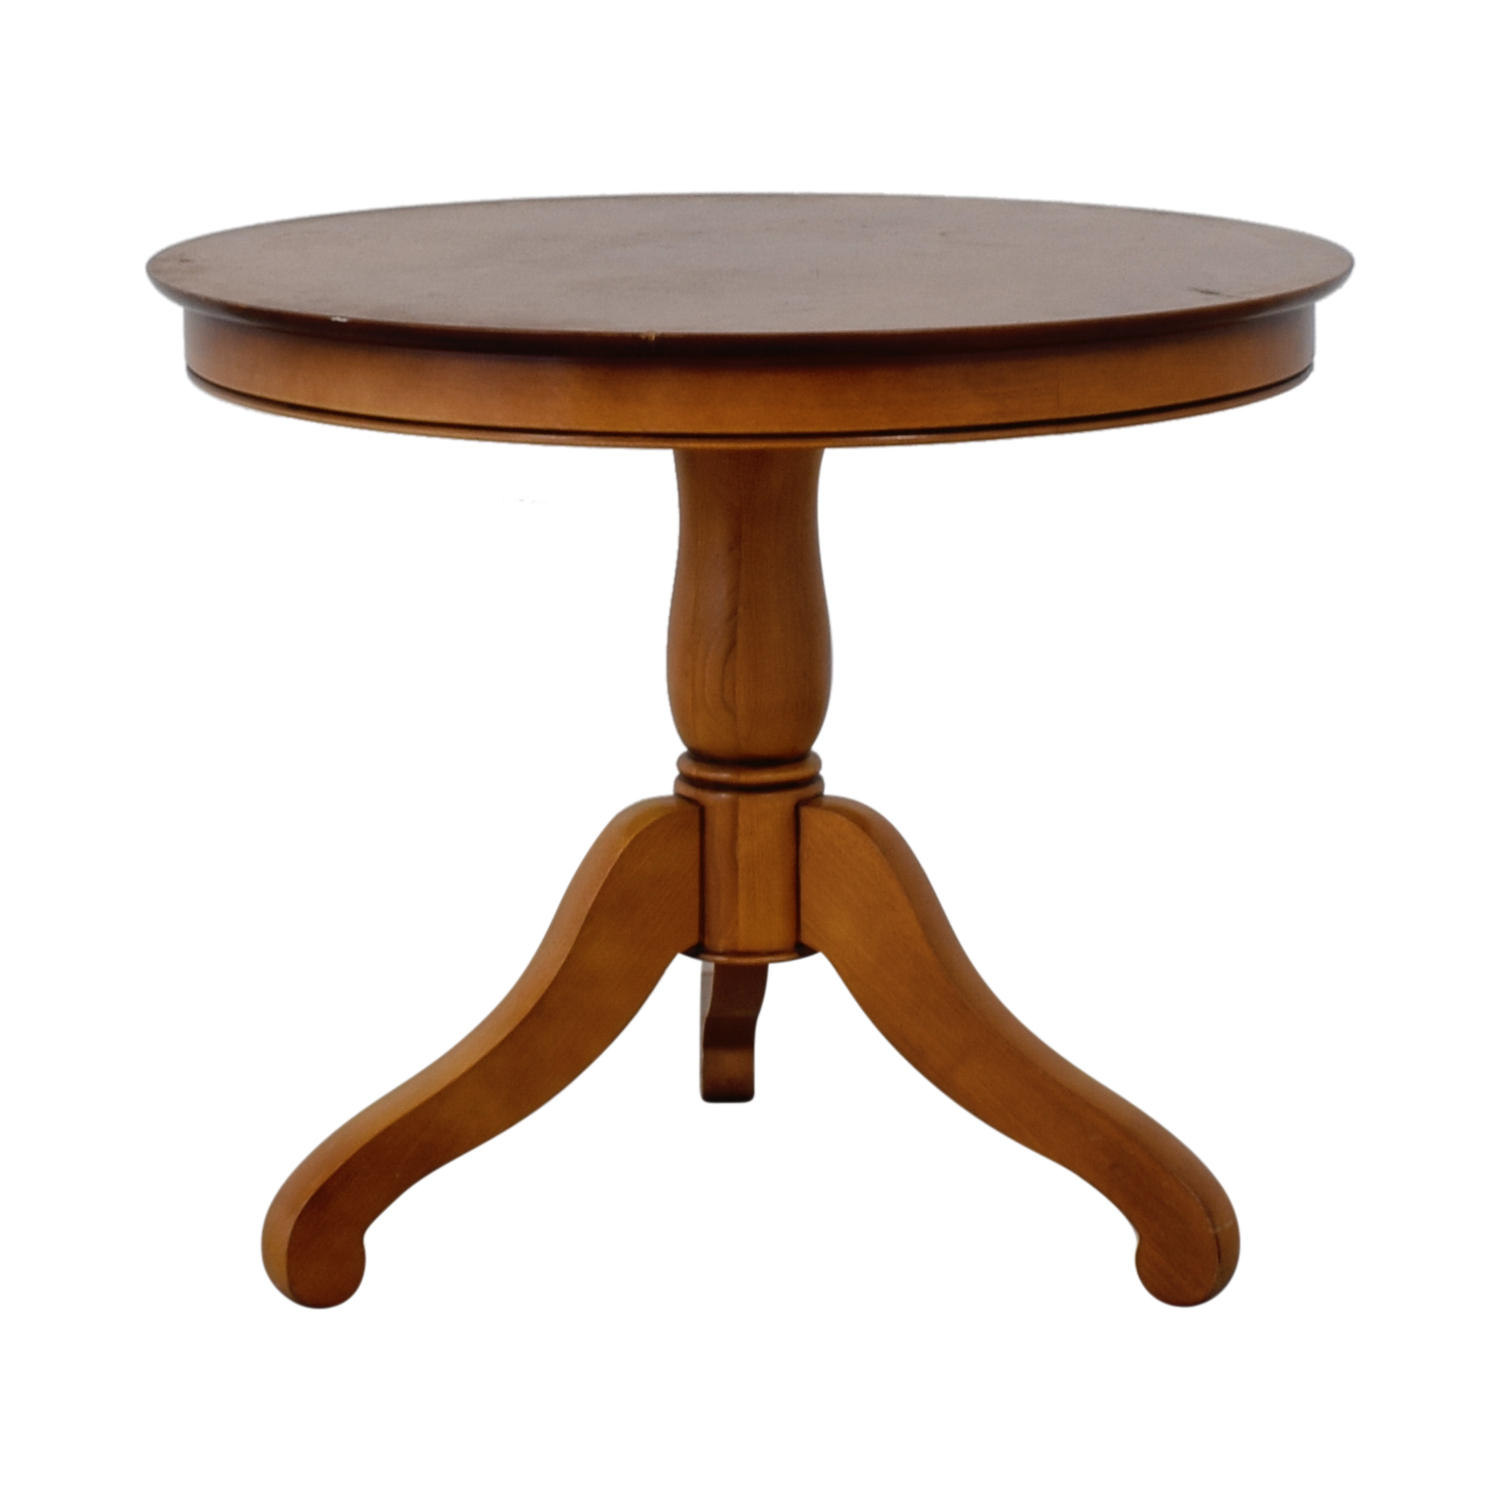 off grange round wood table tables pedestal accent for pallet end brown entryway safavieh gold collections grill with side tablecloth tiny lamps console cherry lamp dark chest